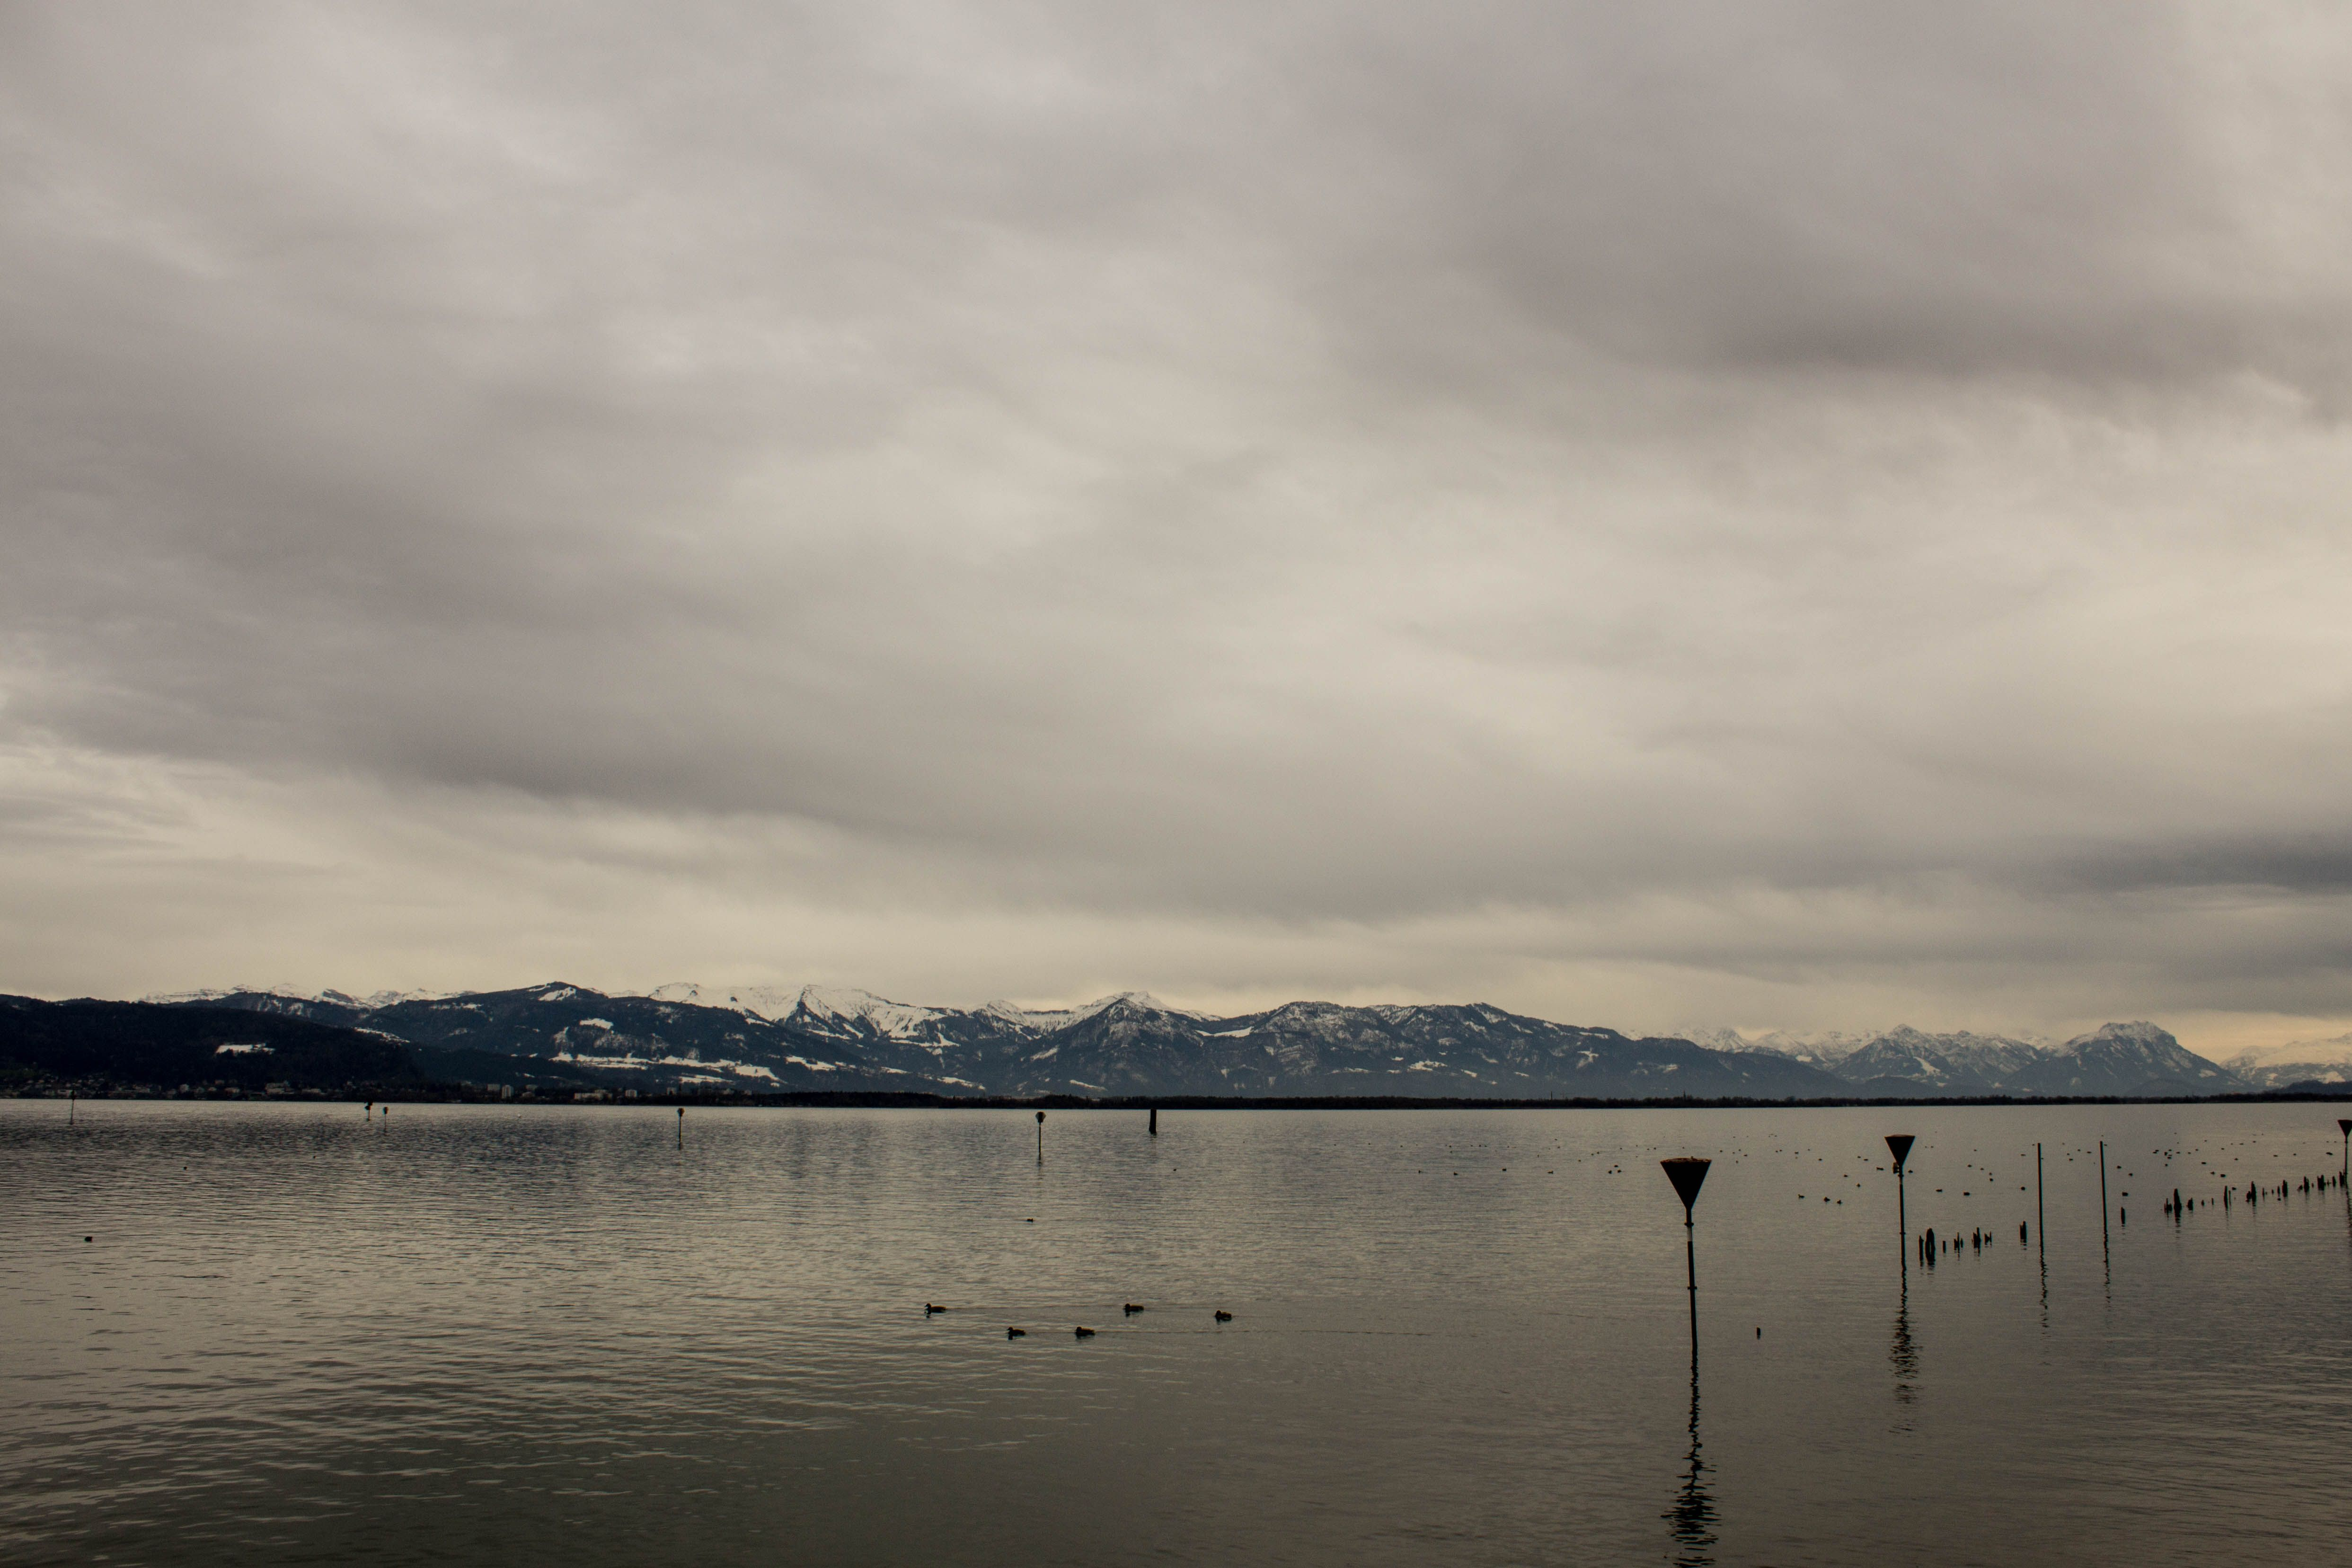 Lake Constance in early Spring Germany (4970x3313) [OC]